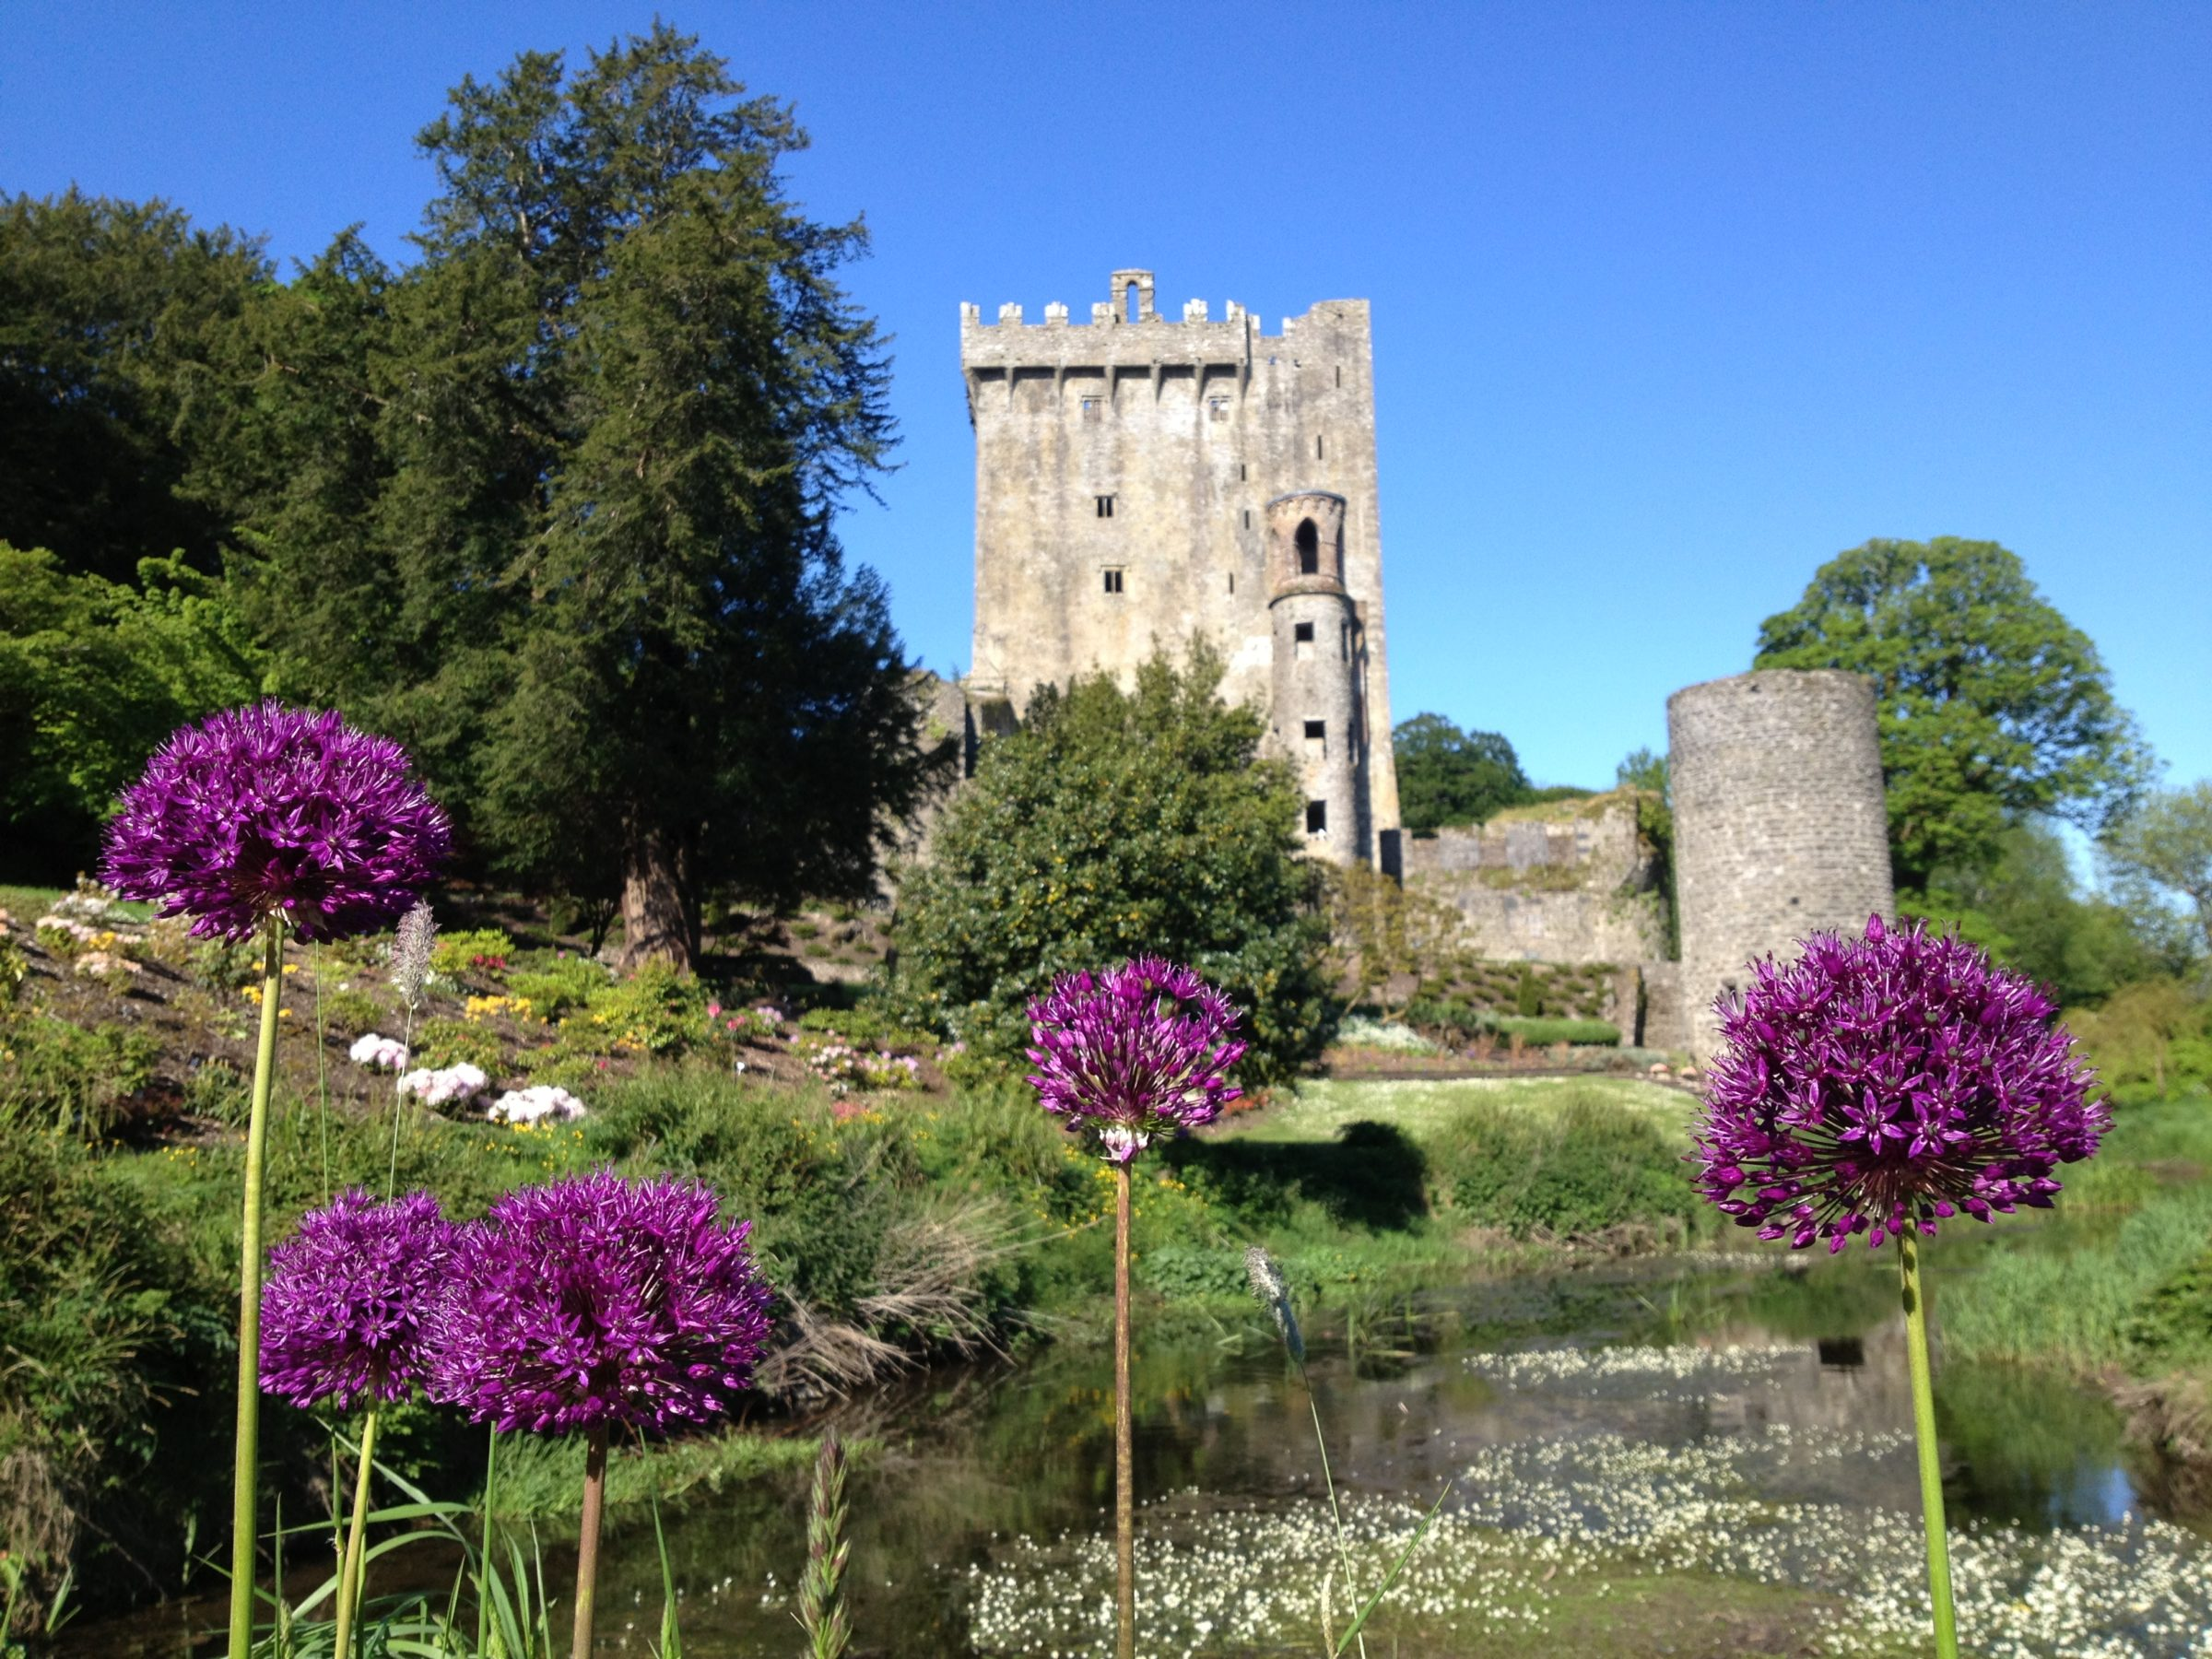 Blarney Castle Irish Gardens gardens to visit